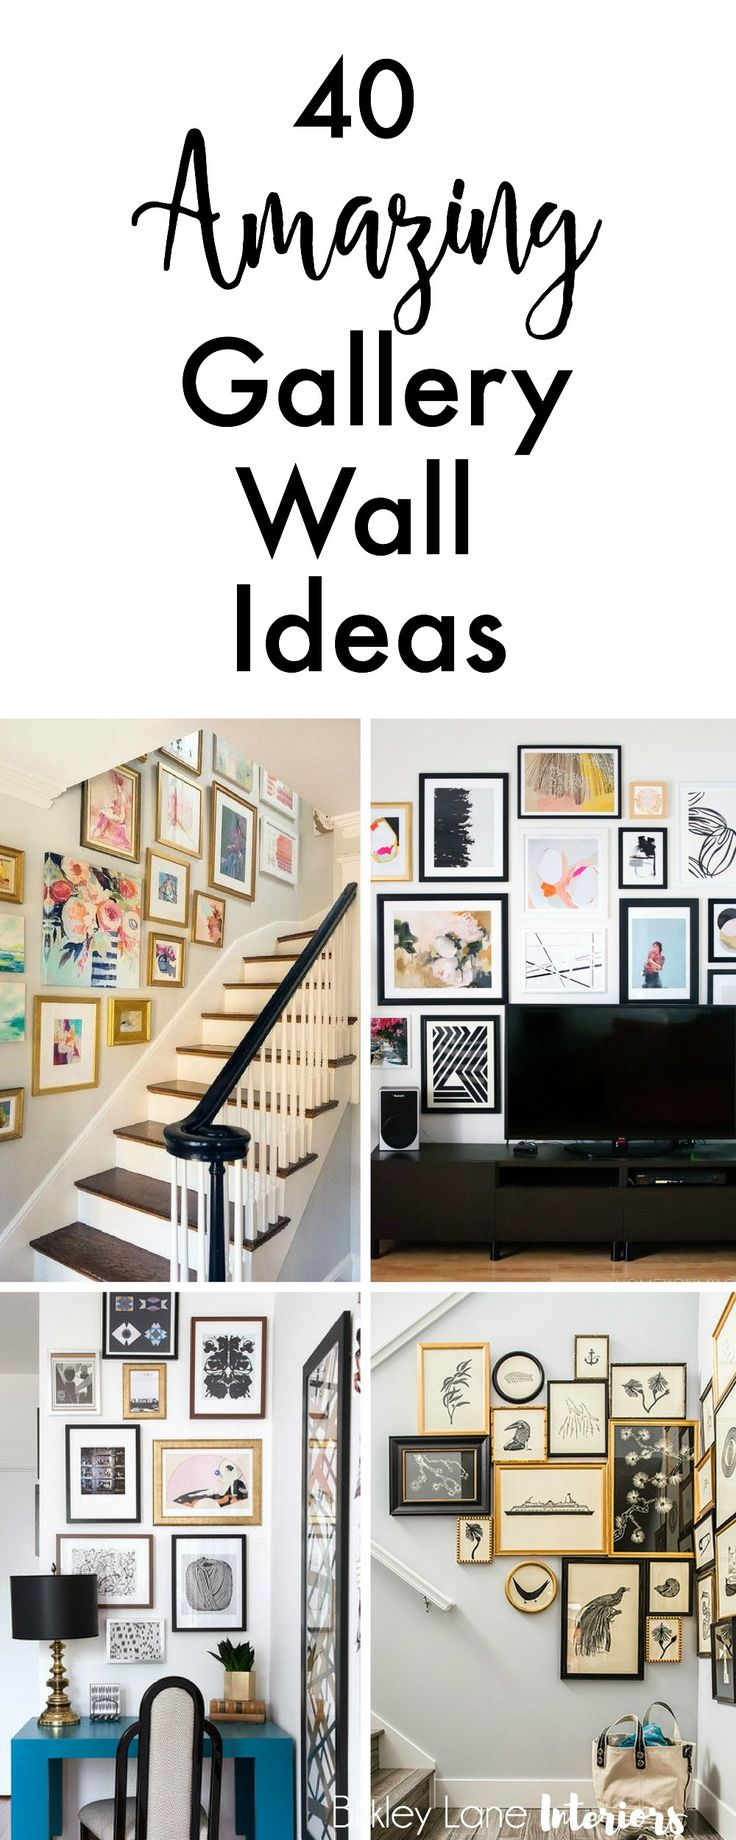 If you're looking for gallery wall ideas and inspiration, search no more! I've collected 40 amazing gallery ideas that will definitely get you excited! Gallery wall, gallery wall ideas, gallery wall layout, gallery wall living room, how to do a gallery wall, how to create a gallery wall